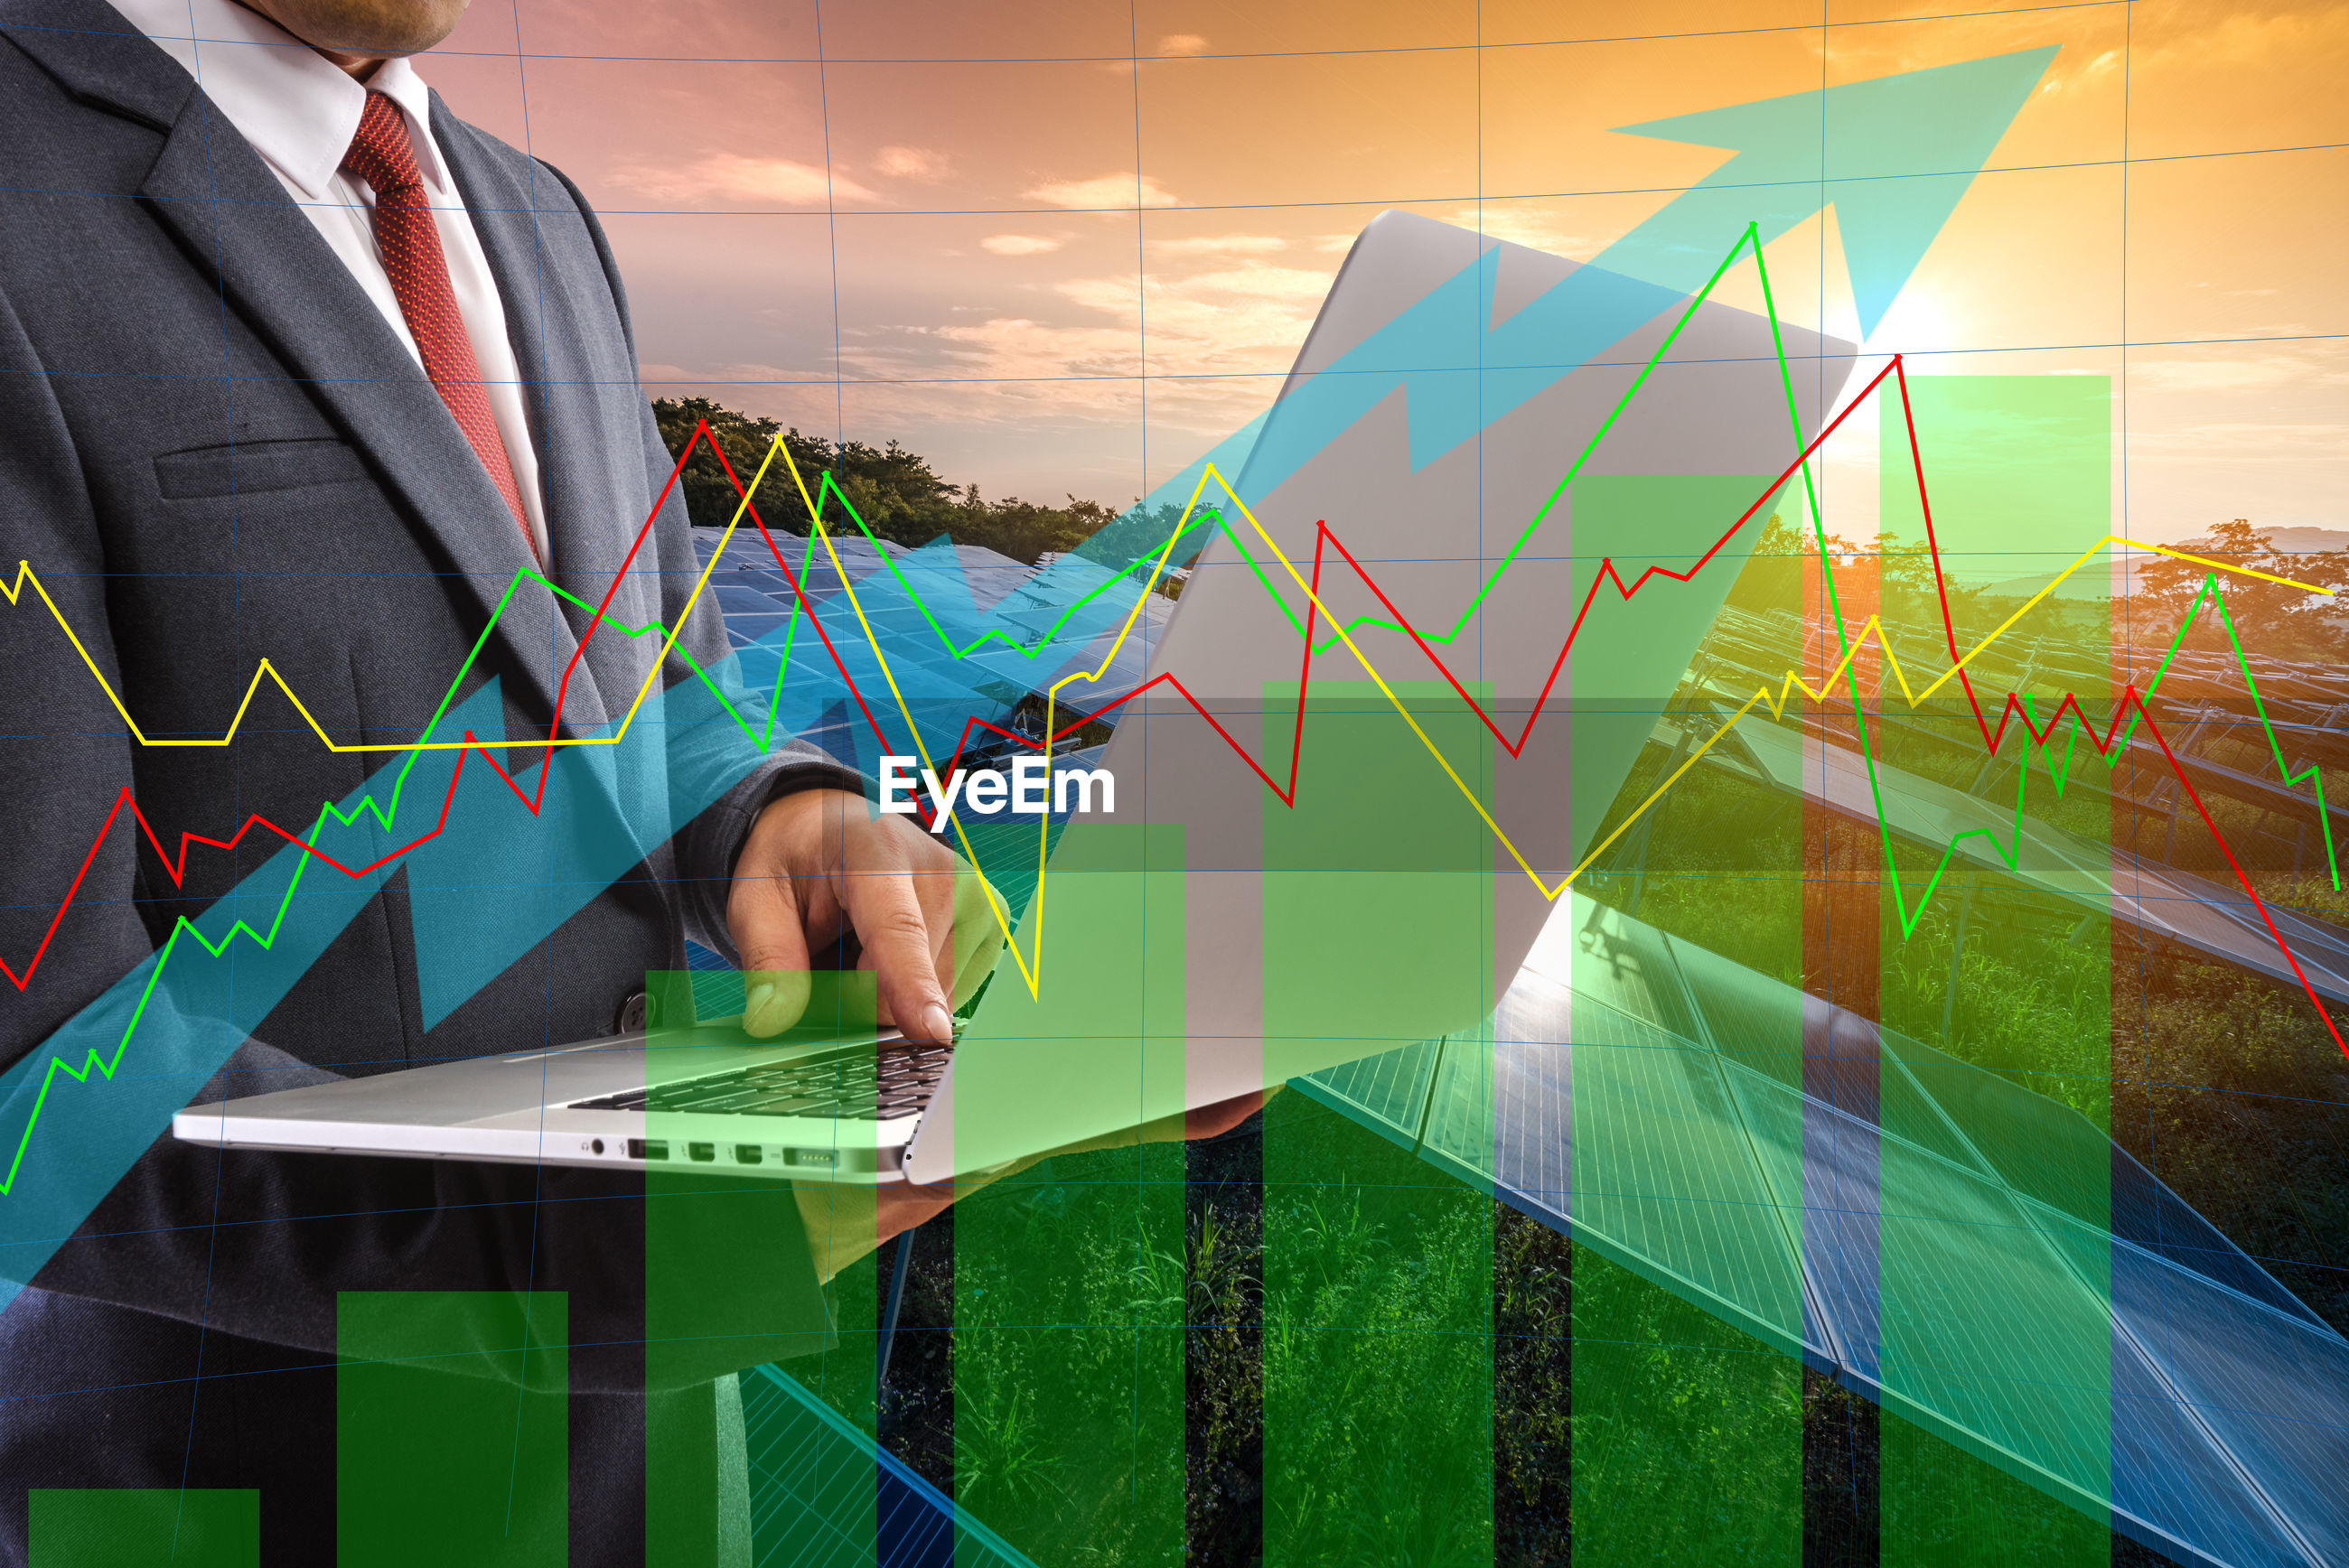 Digital composite image of businessman using laptop by solar panels